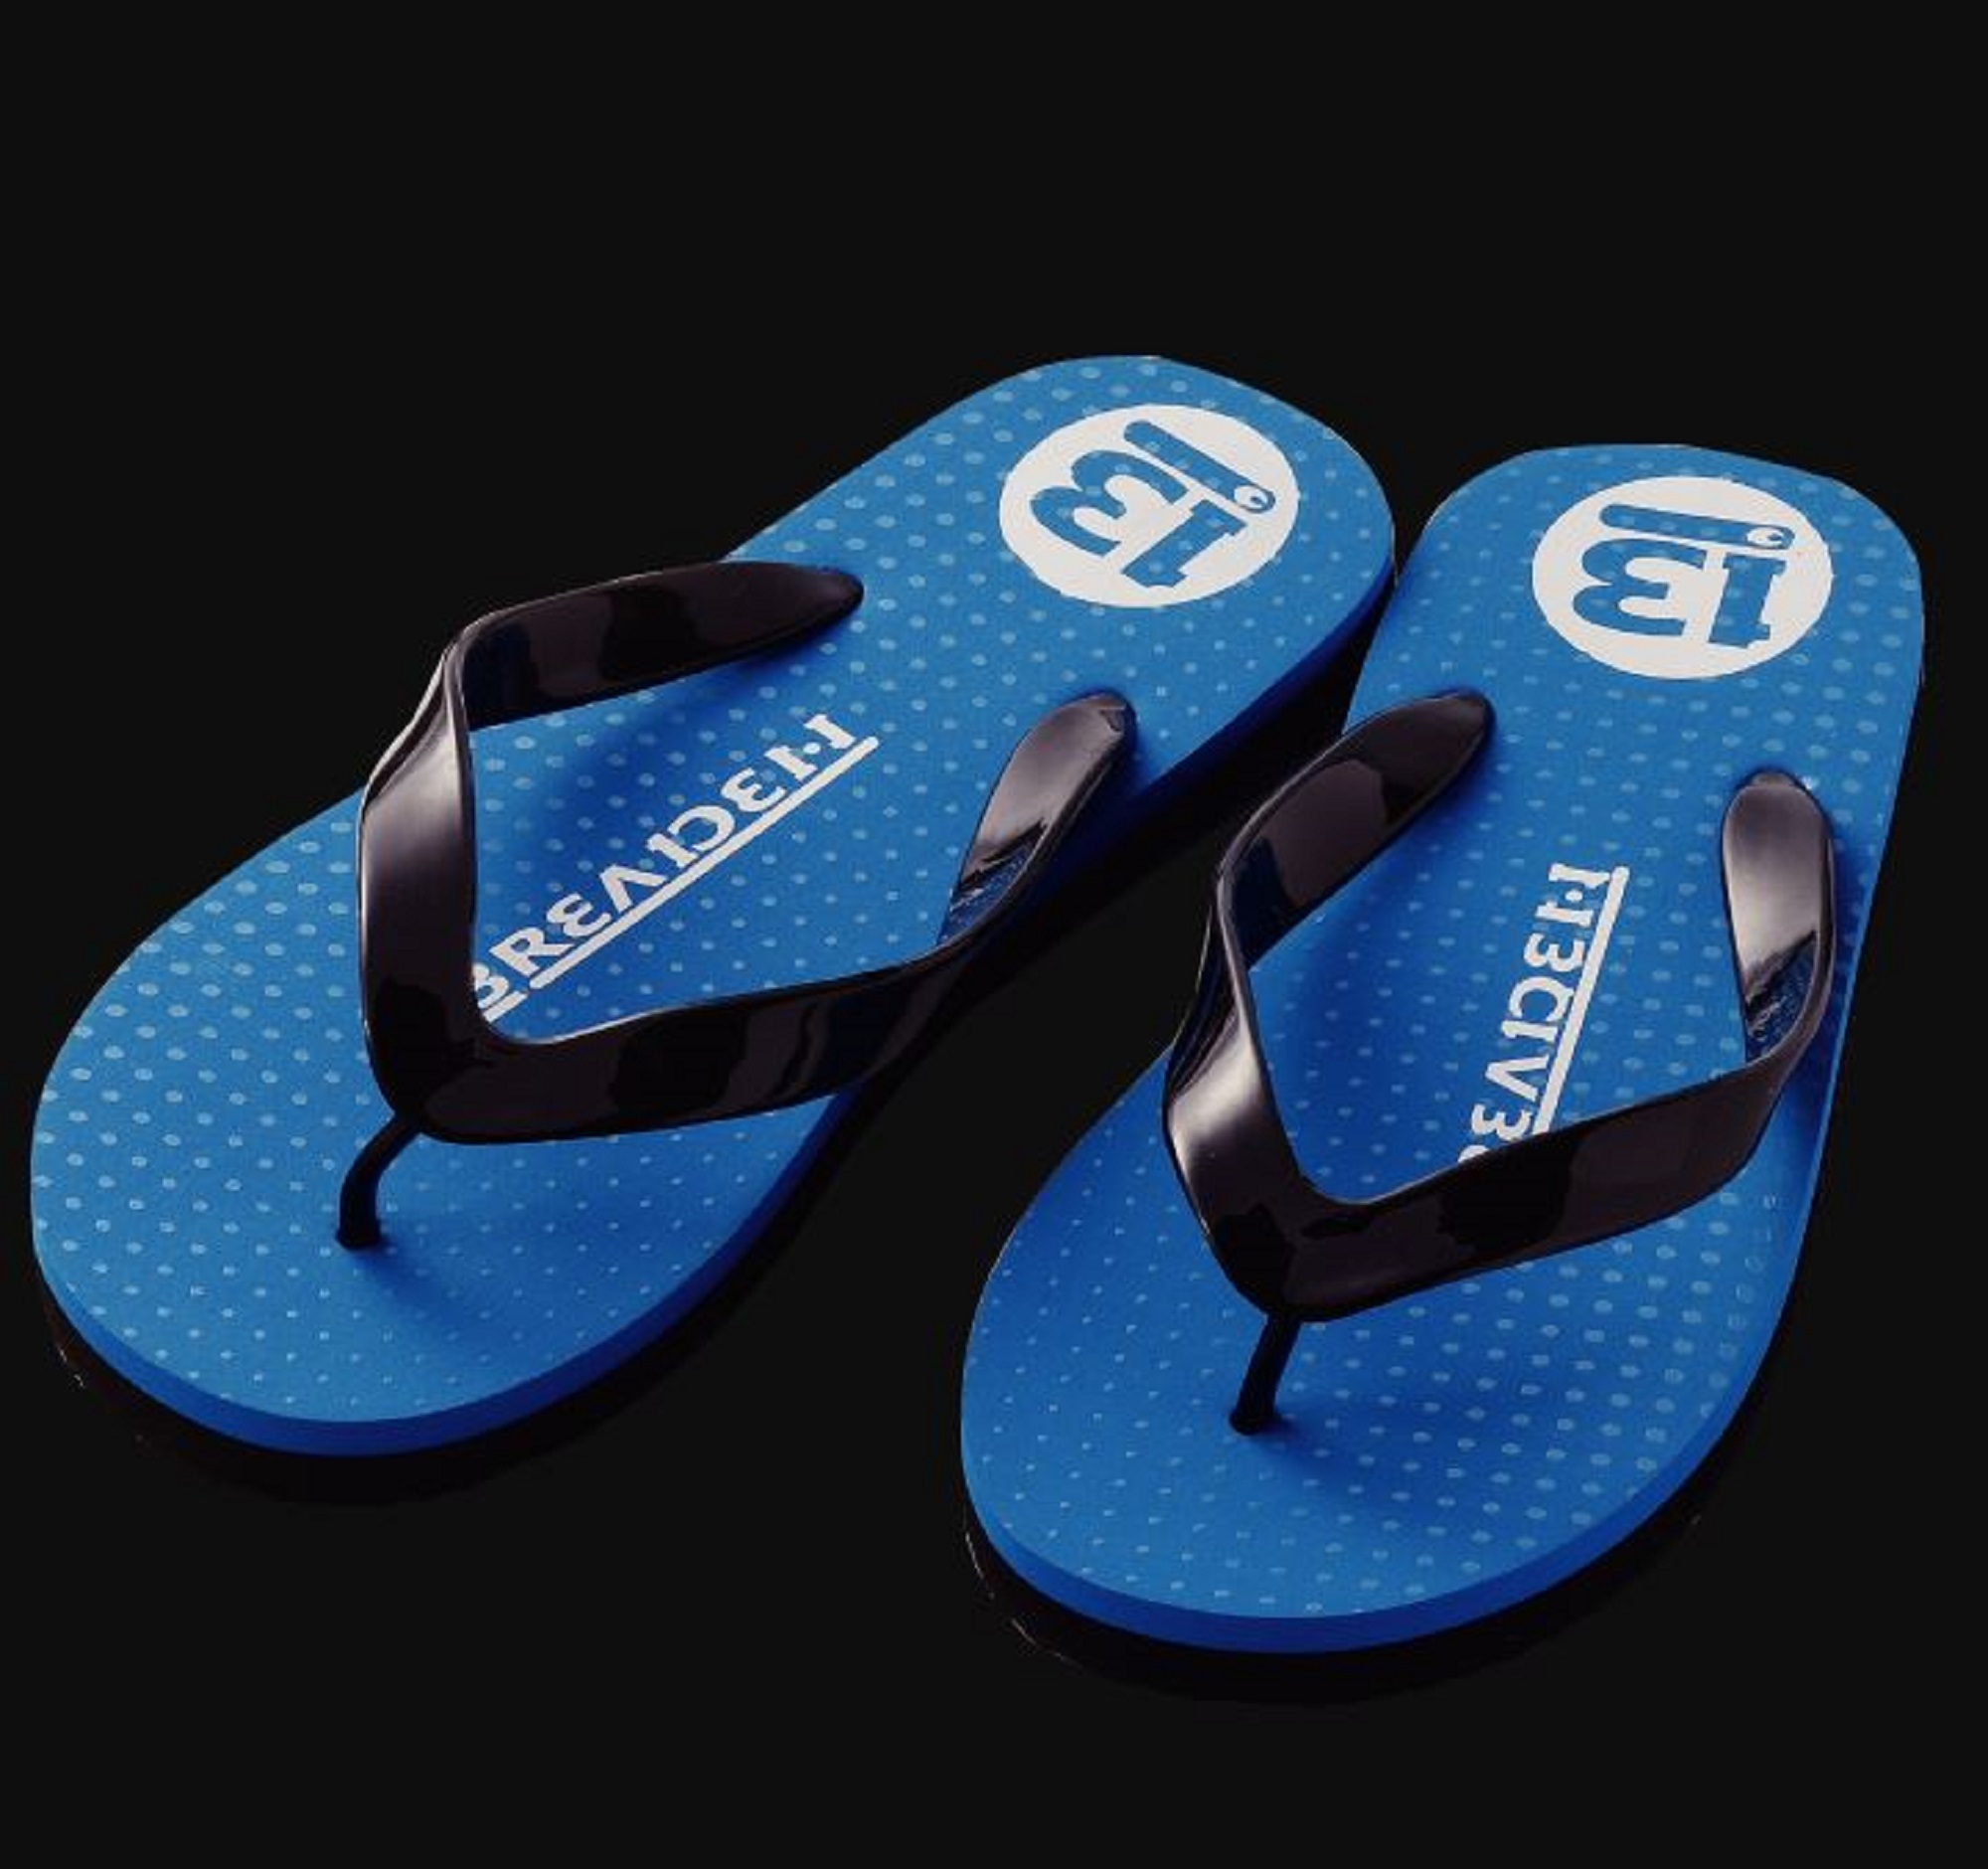 Breaden Beach Sandals Size 27cm 01 (7324)